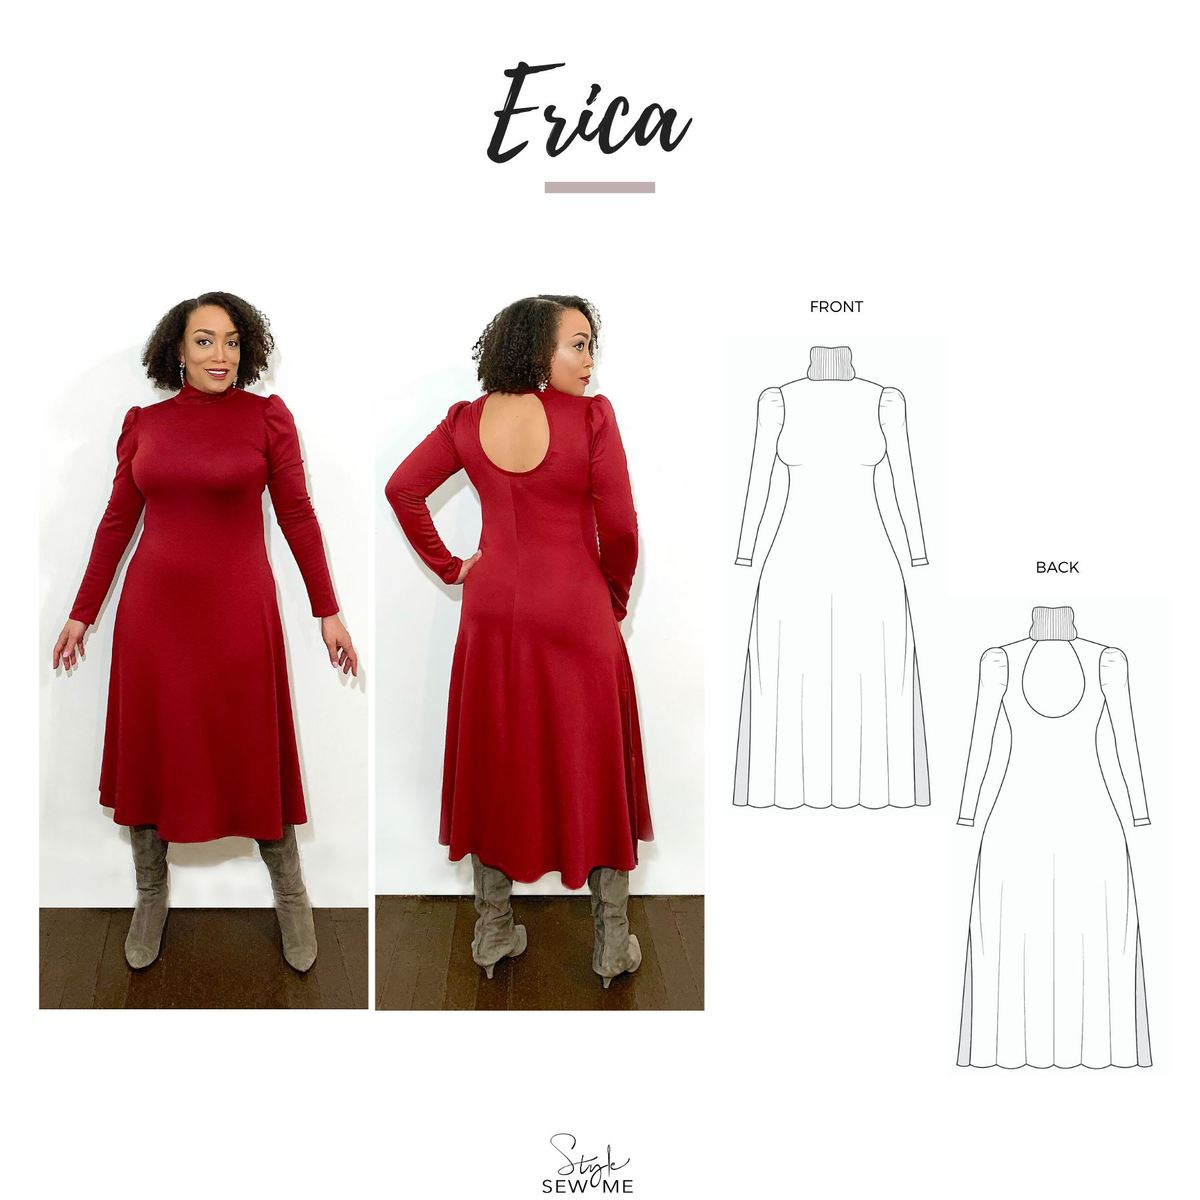 The 'Erica' Pattern X Style Sew Me Patterns -- Erica Bunker DIY Style!